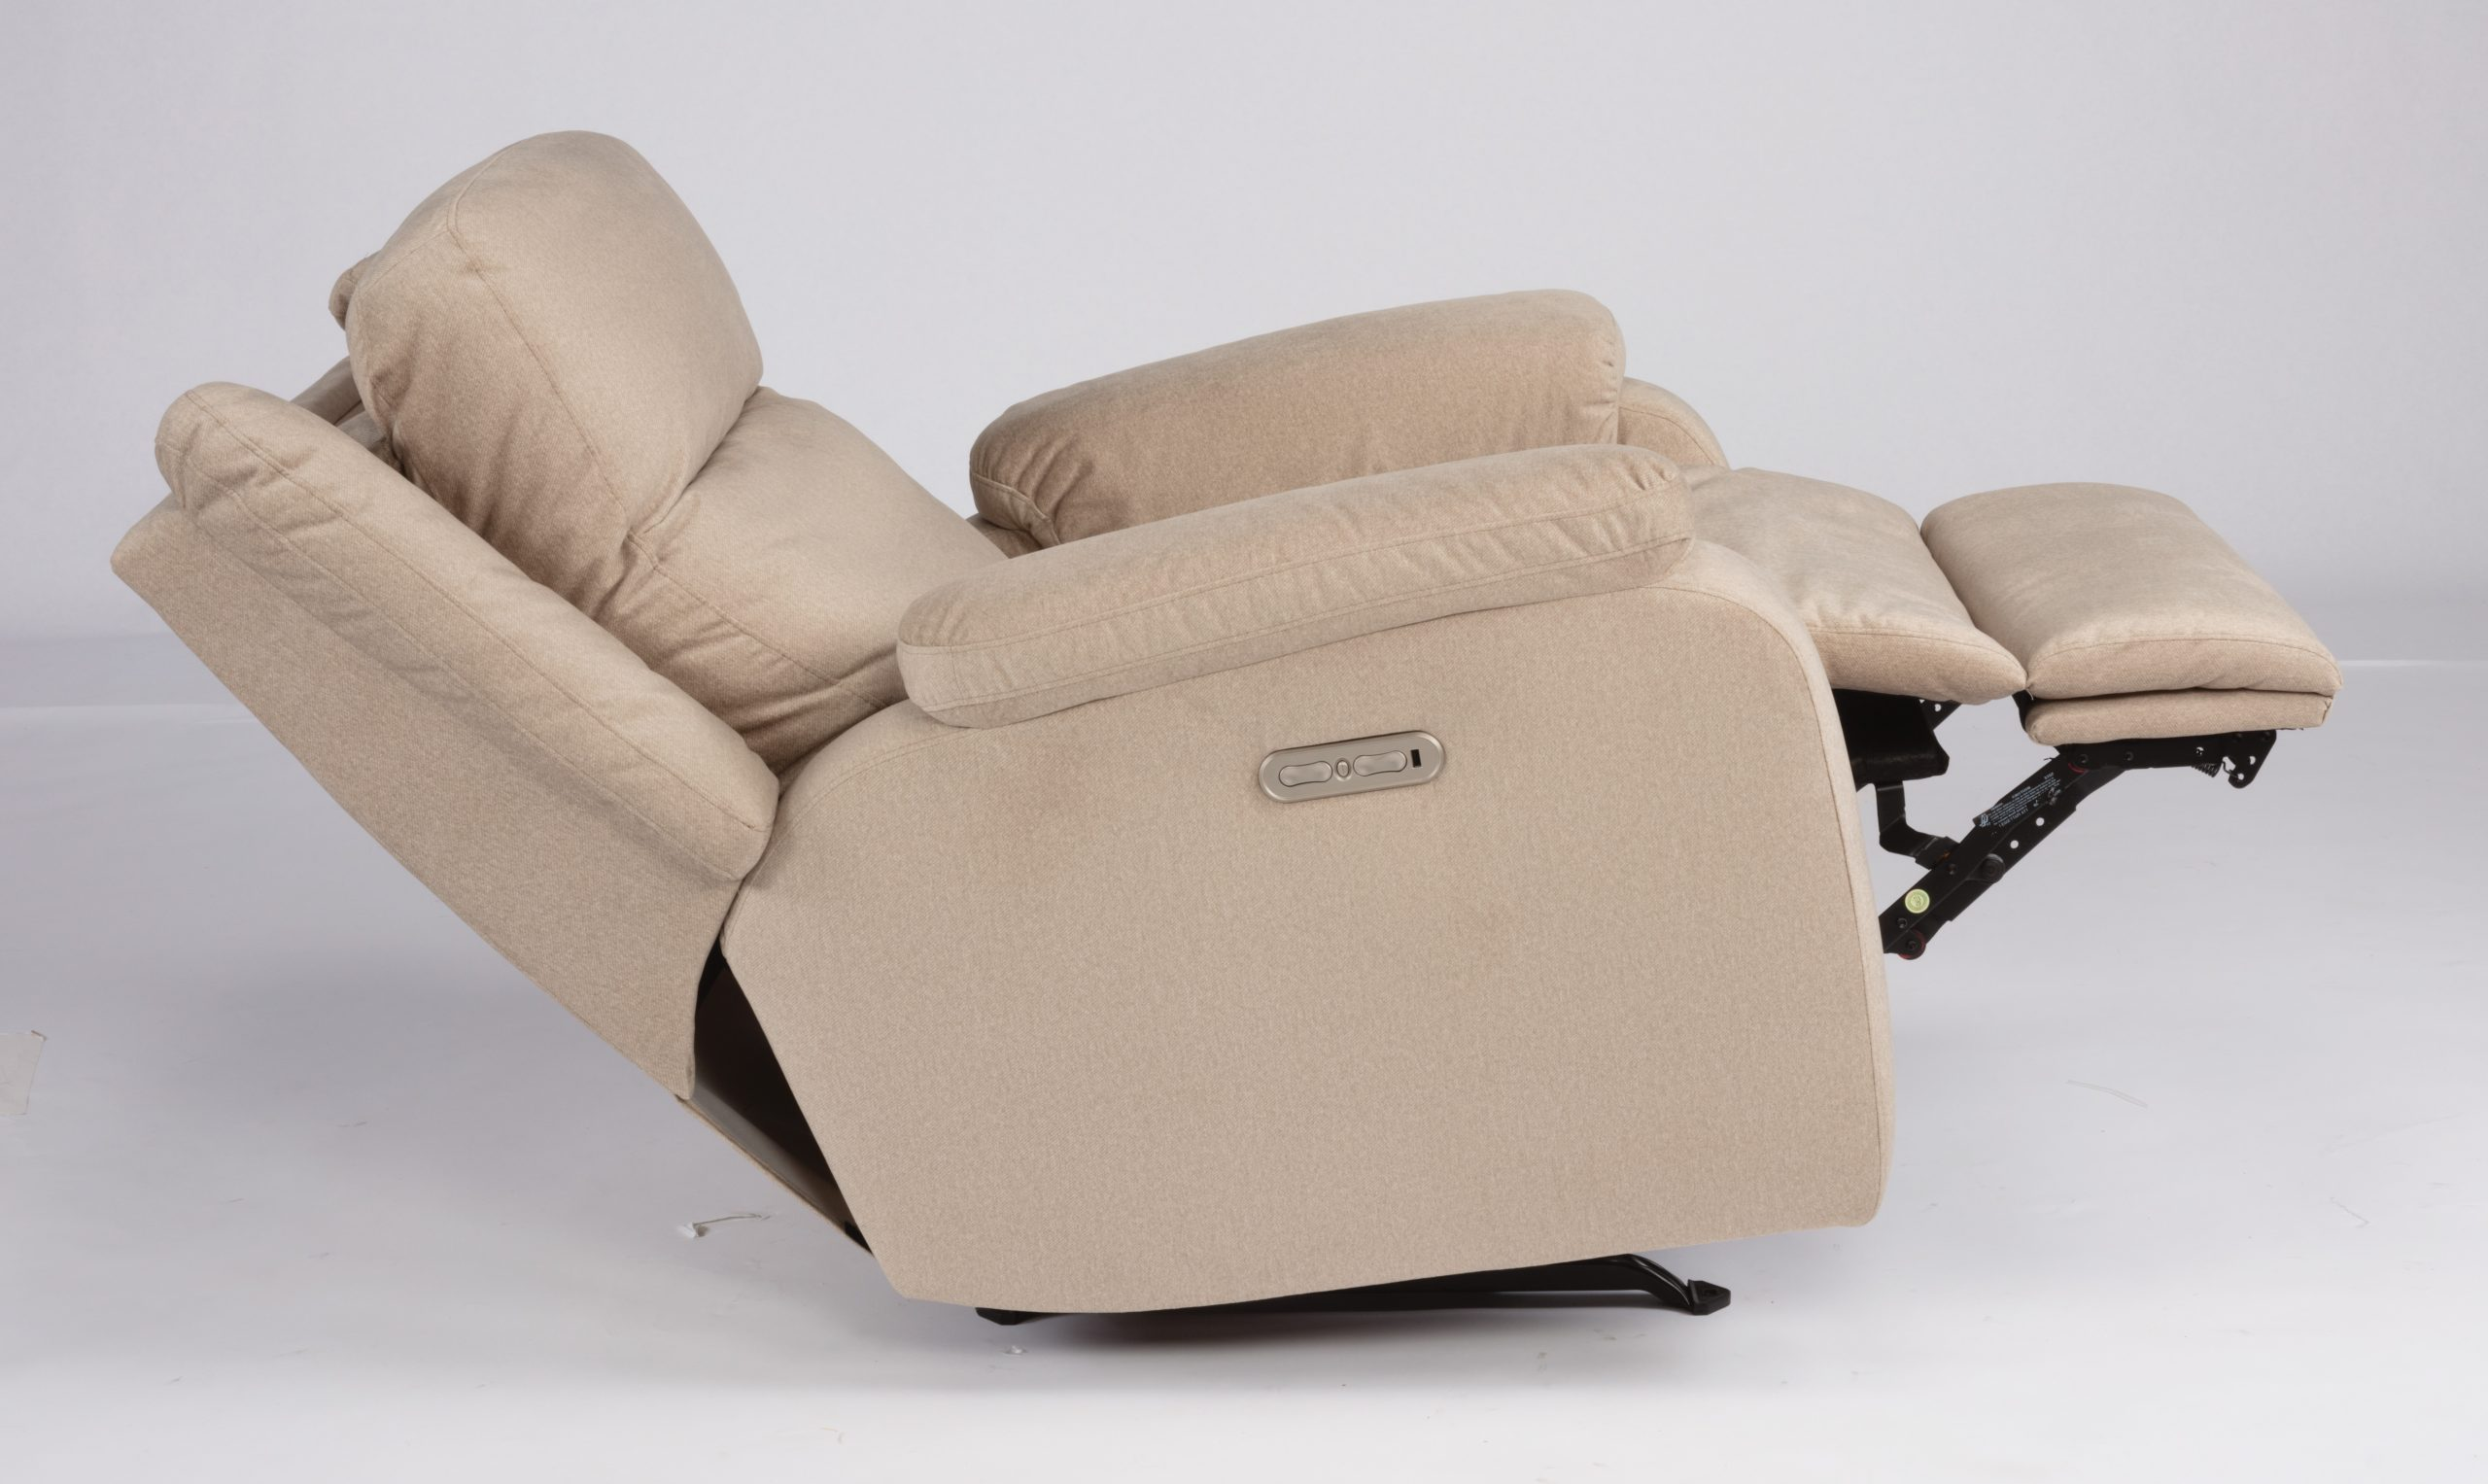 Flexsteel Magnus Leather Power Recliner with Headrest (Recliners)